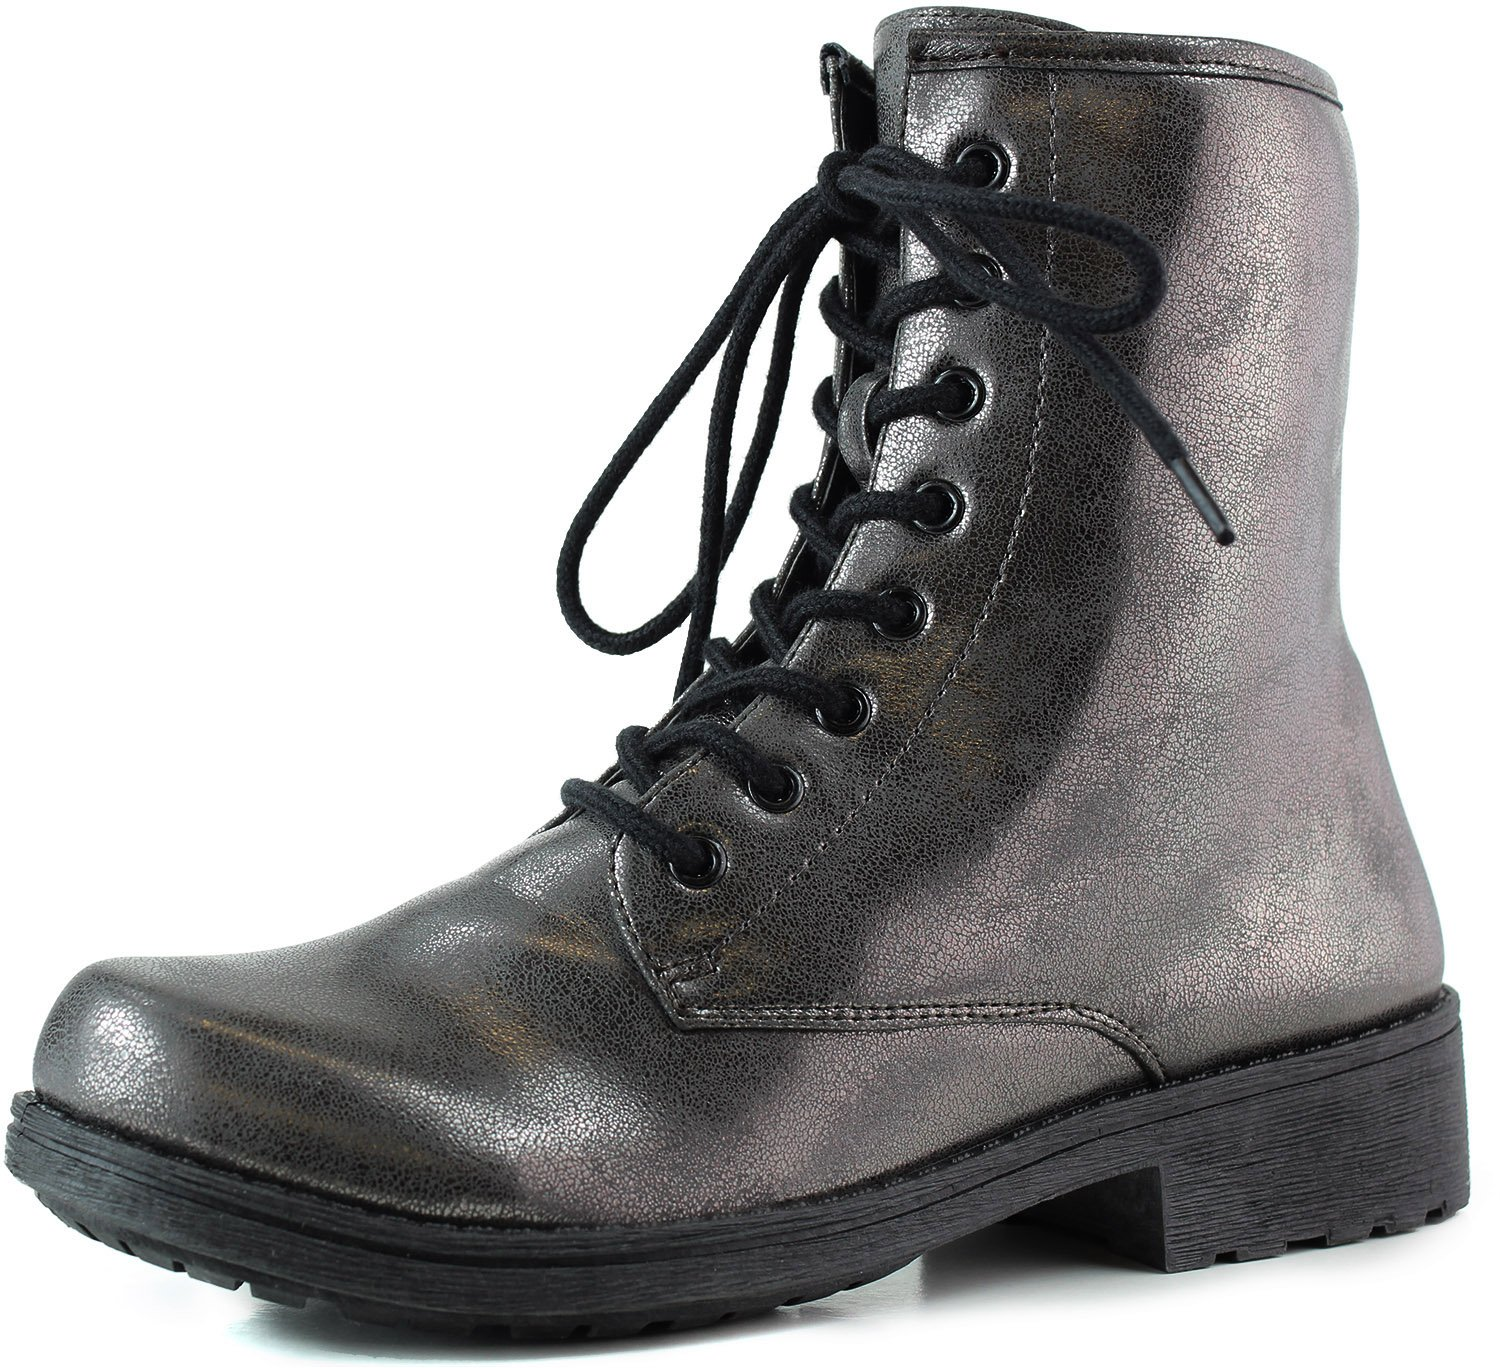 Women's Ankle Booties Military Combat Lace Up Boot Pewter Metallic Color, Pewter , 8.5